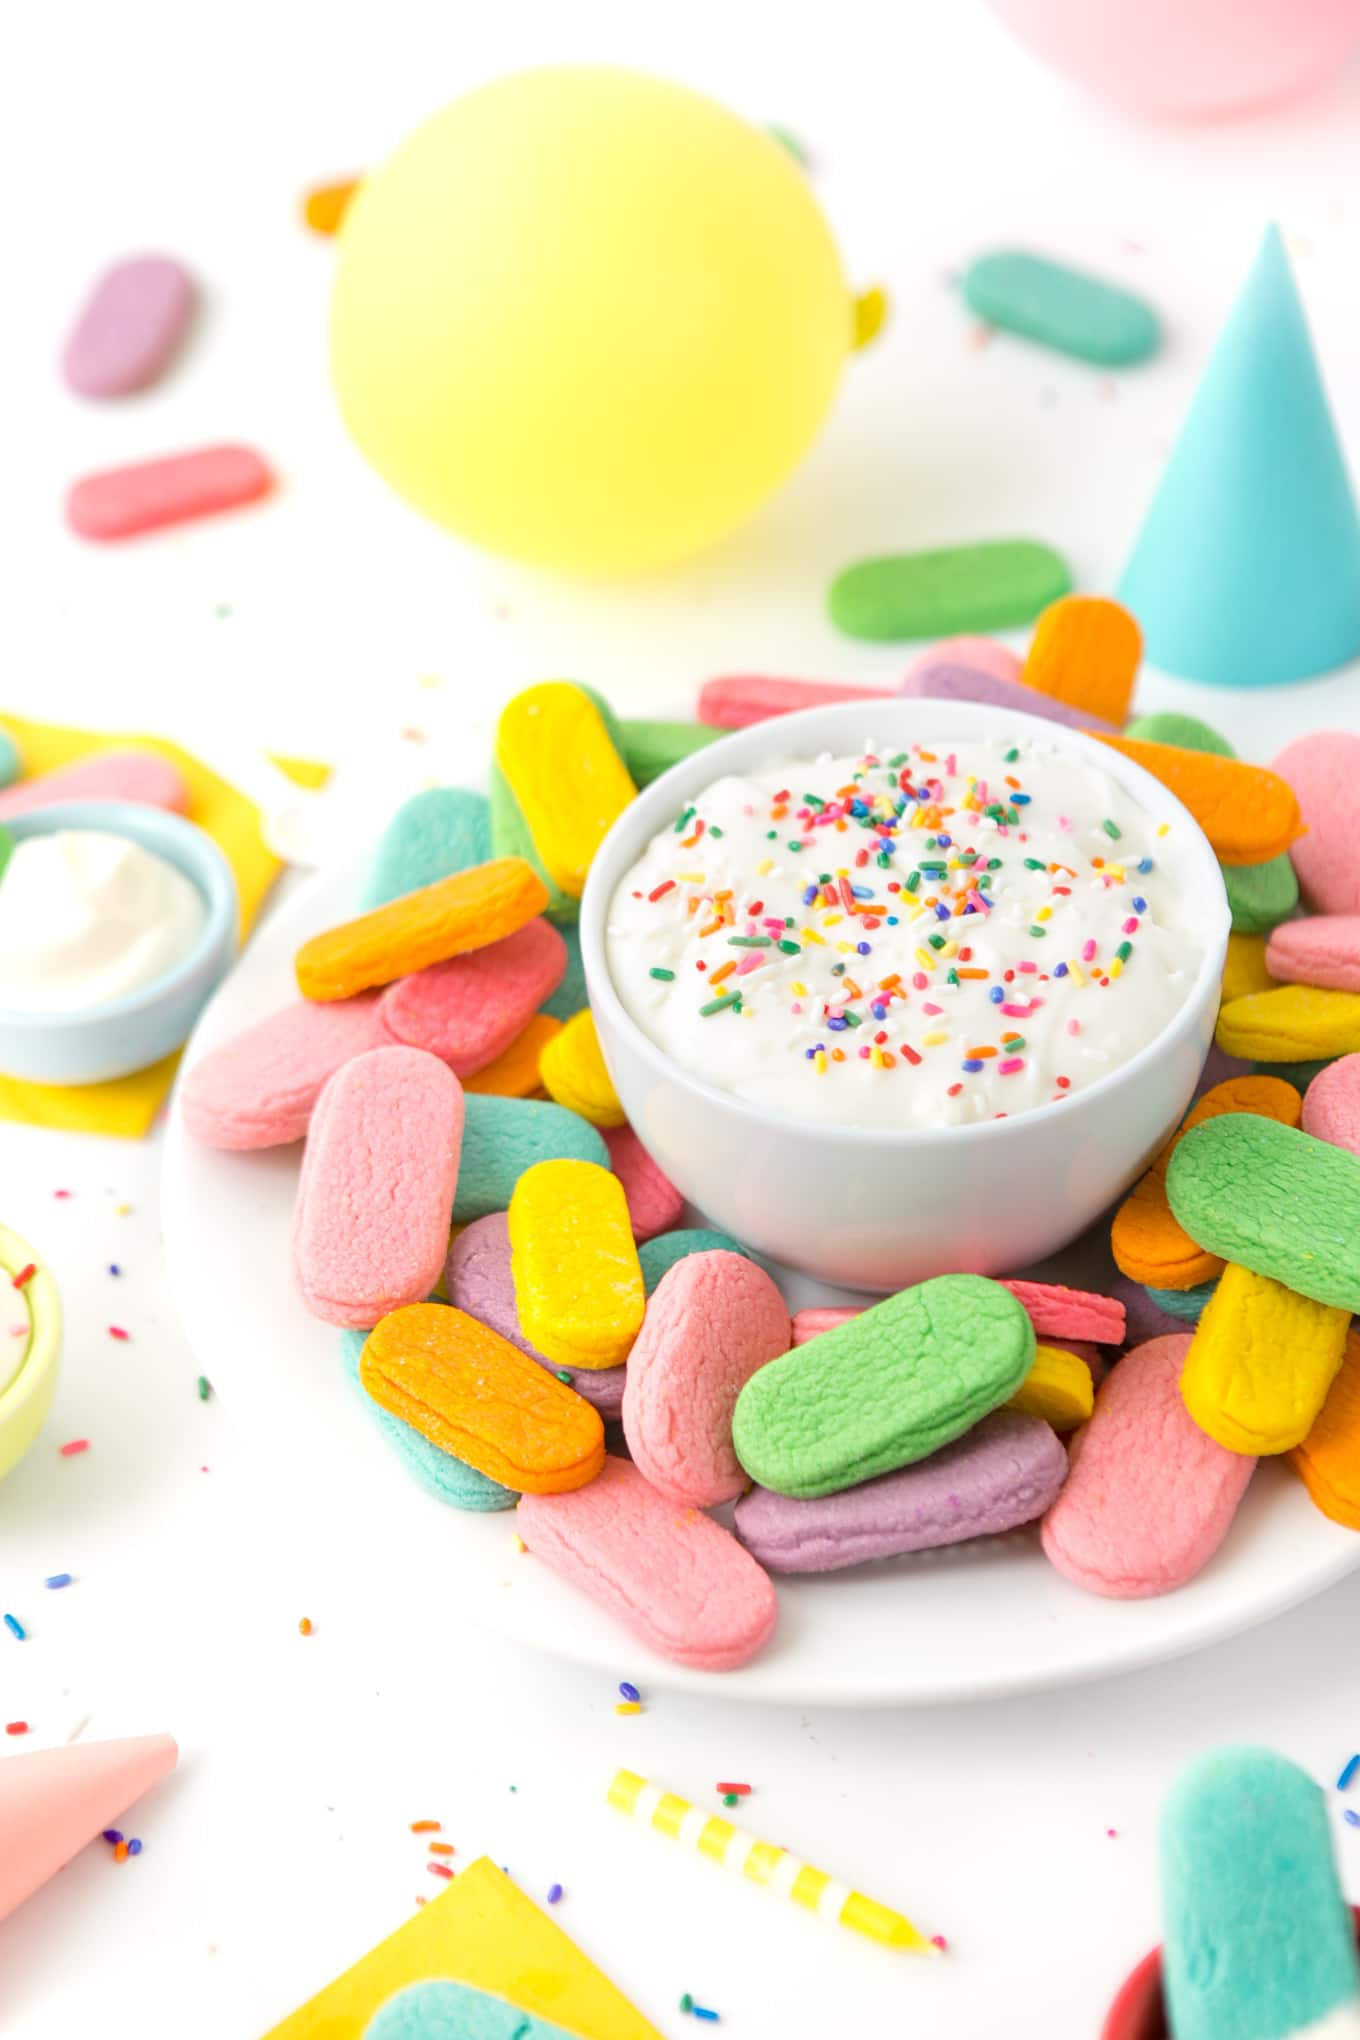 Plate of rainbow sprinkle sugar cookies with a bowl of cream cheese frosting in a party scene.